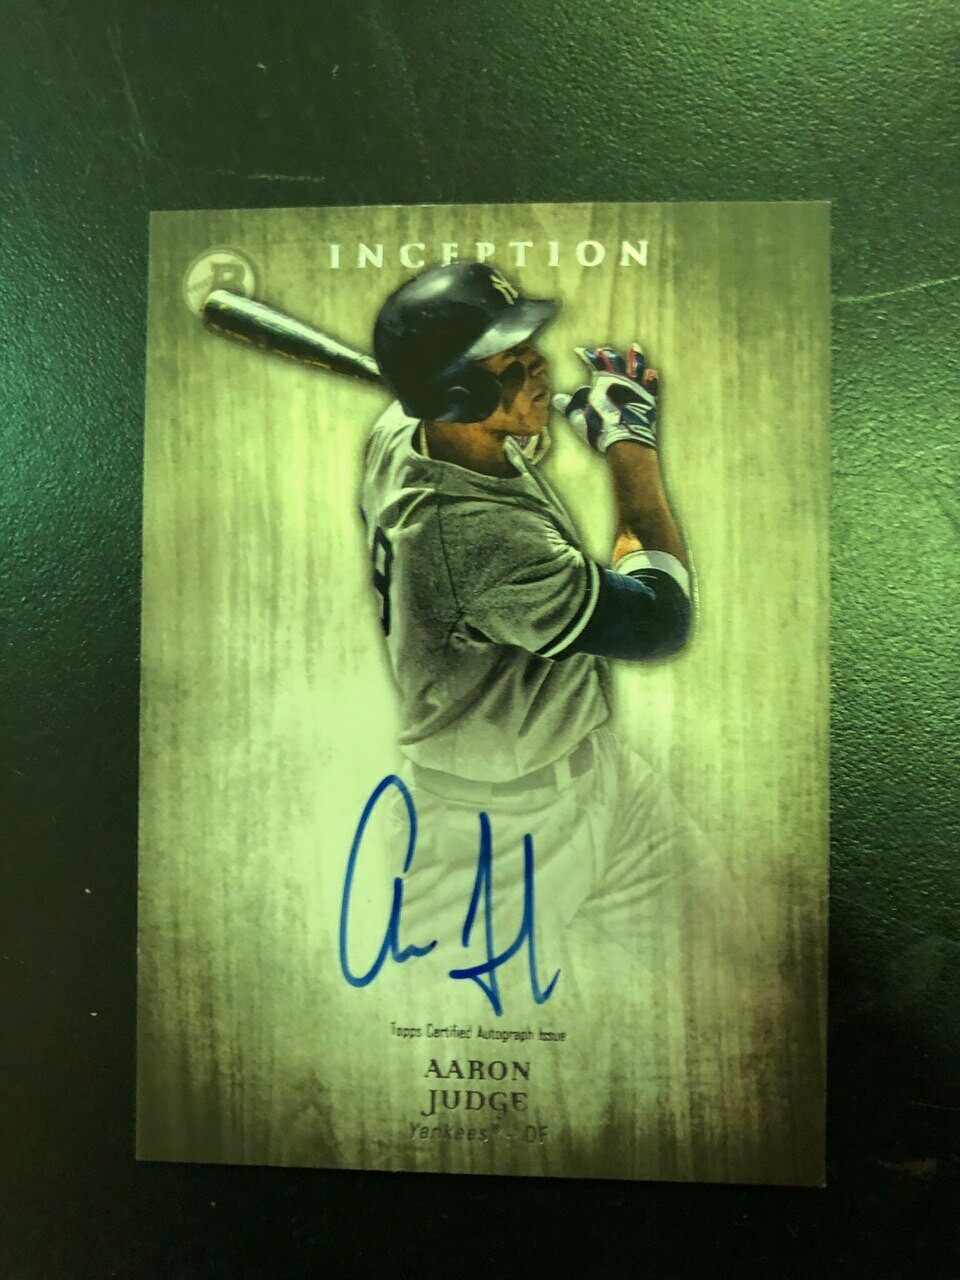 2014 Topps Inception Aaron Judge Autograph card, $295